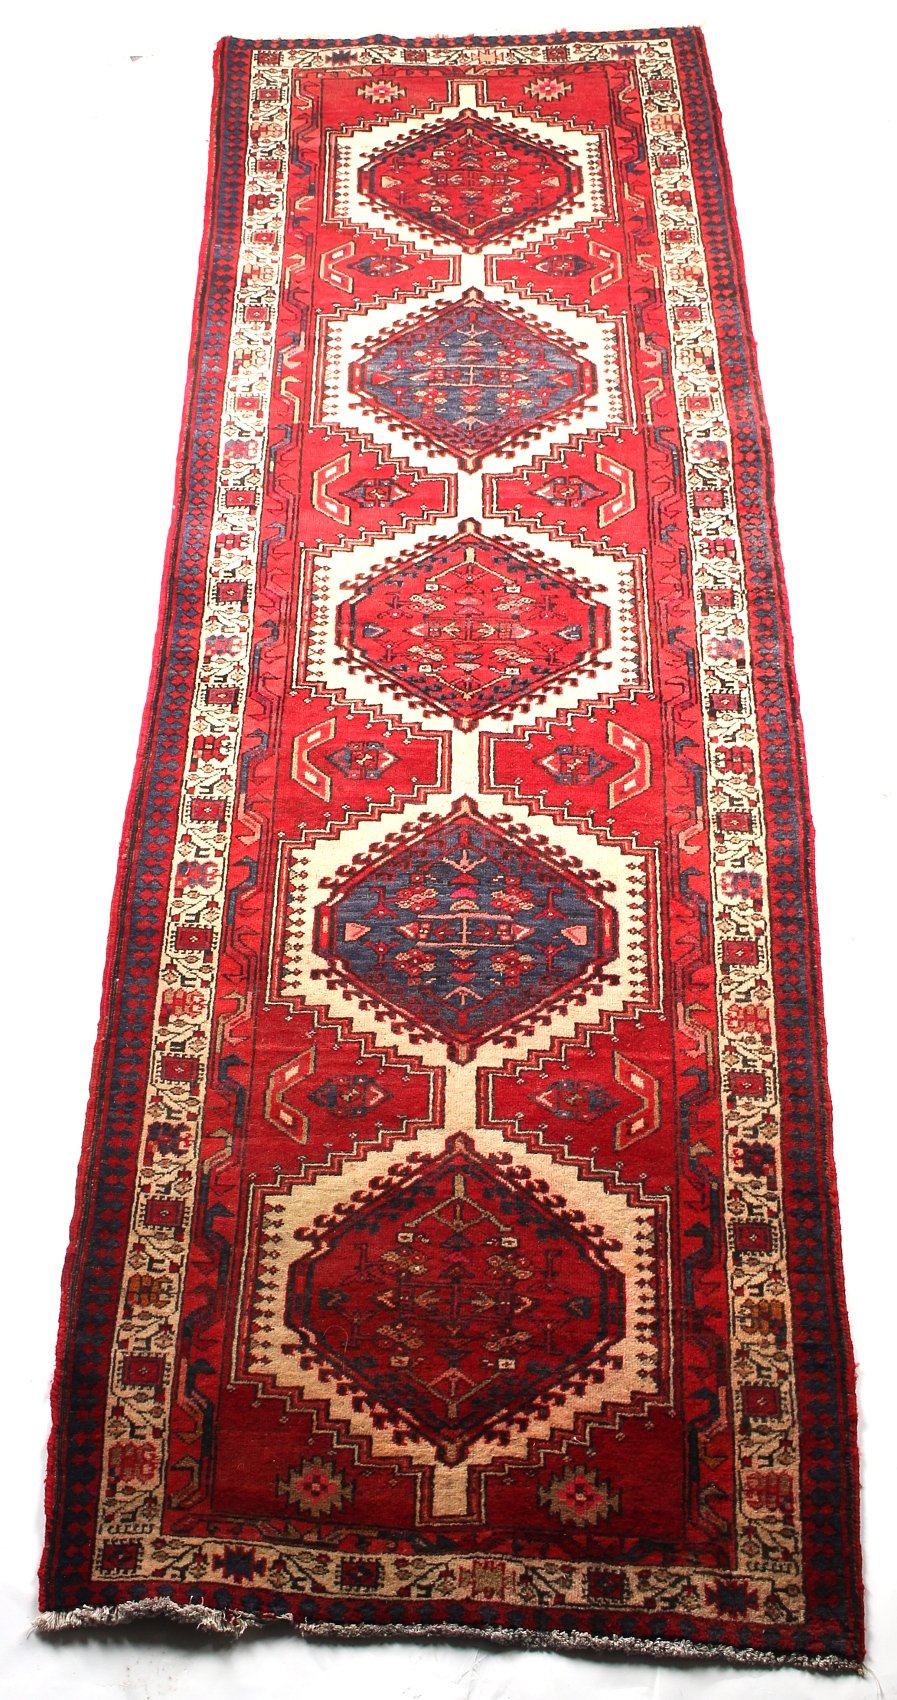 An Azari woollen hand-made runner, with red ground, 134 by 47ins. (340 by 107cms.).